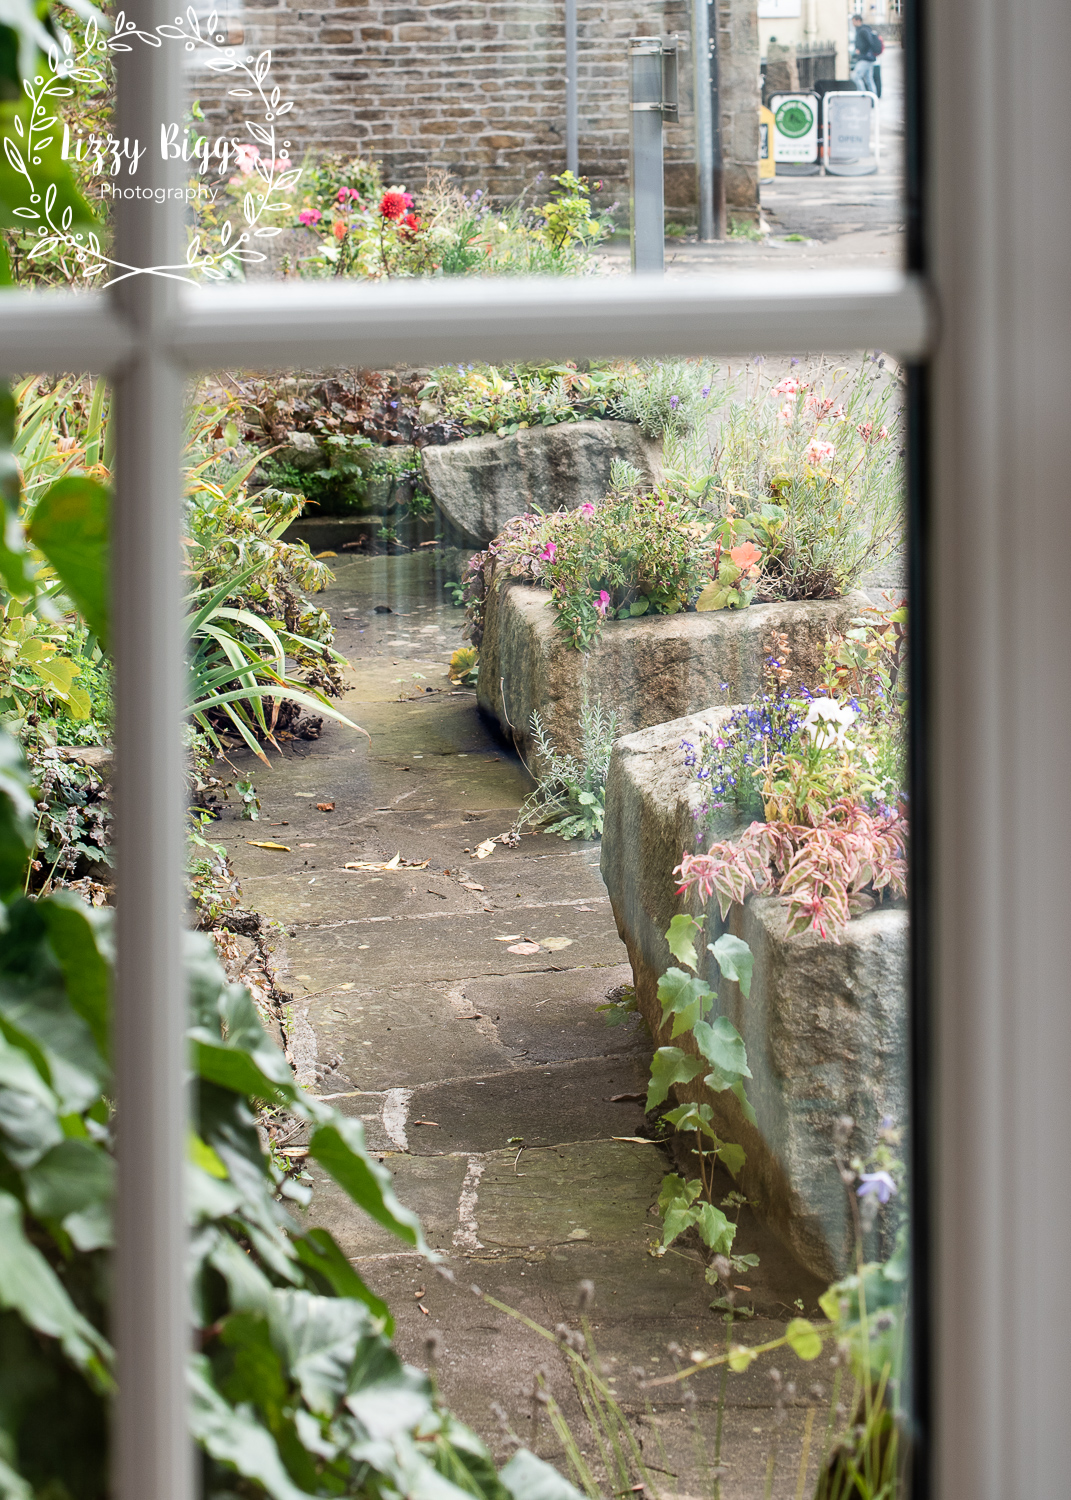 Lizzy_Biggs_Photography_flower_planters_view_from_shop_window